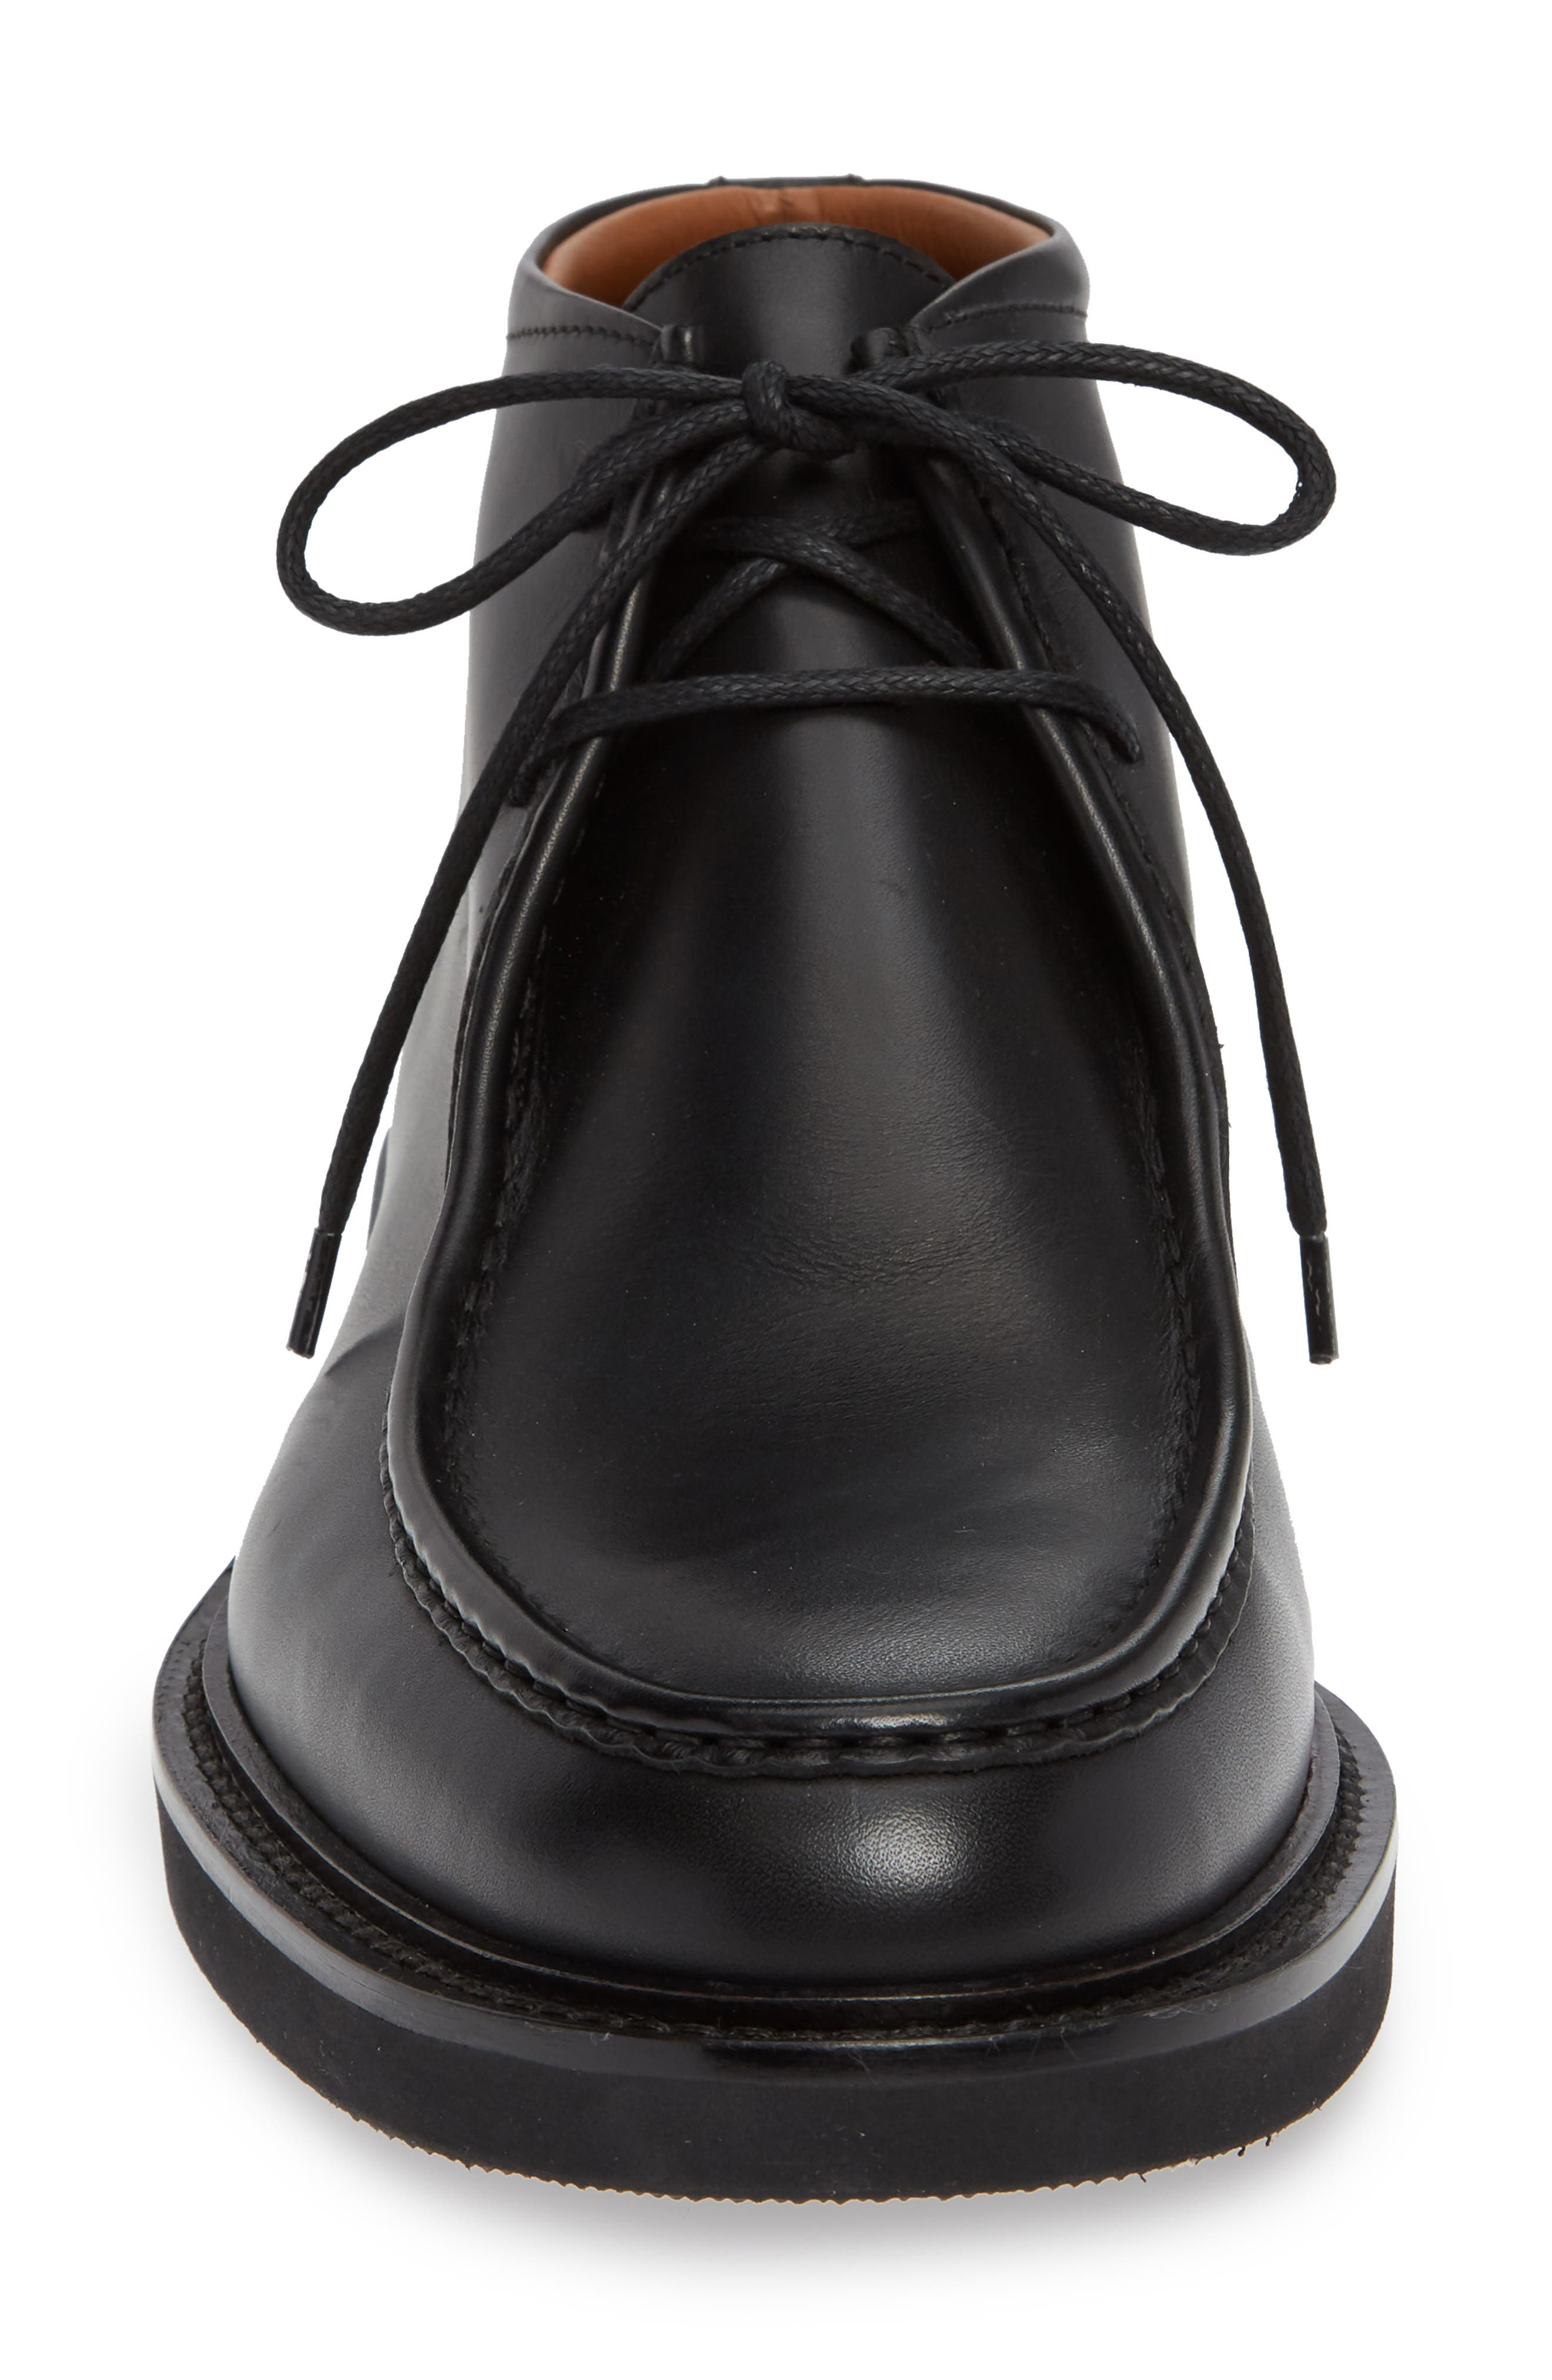 Kyle Weatherproof Chukka Boot,                             Alternate thumbnail 4, color,                             BLACK LEATHER